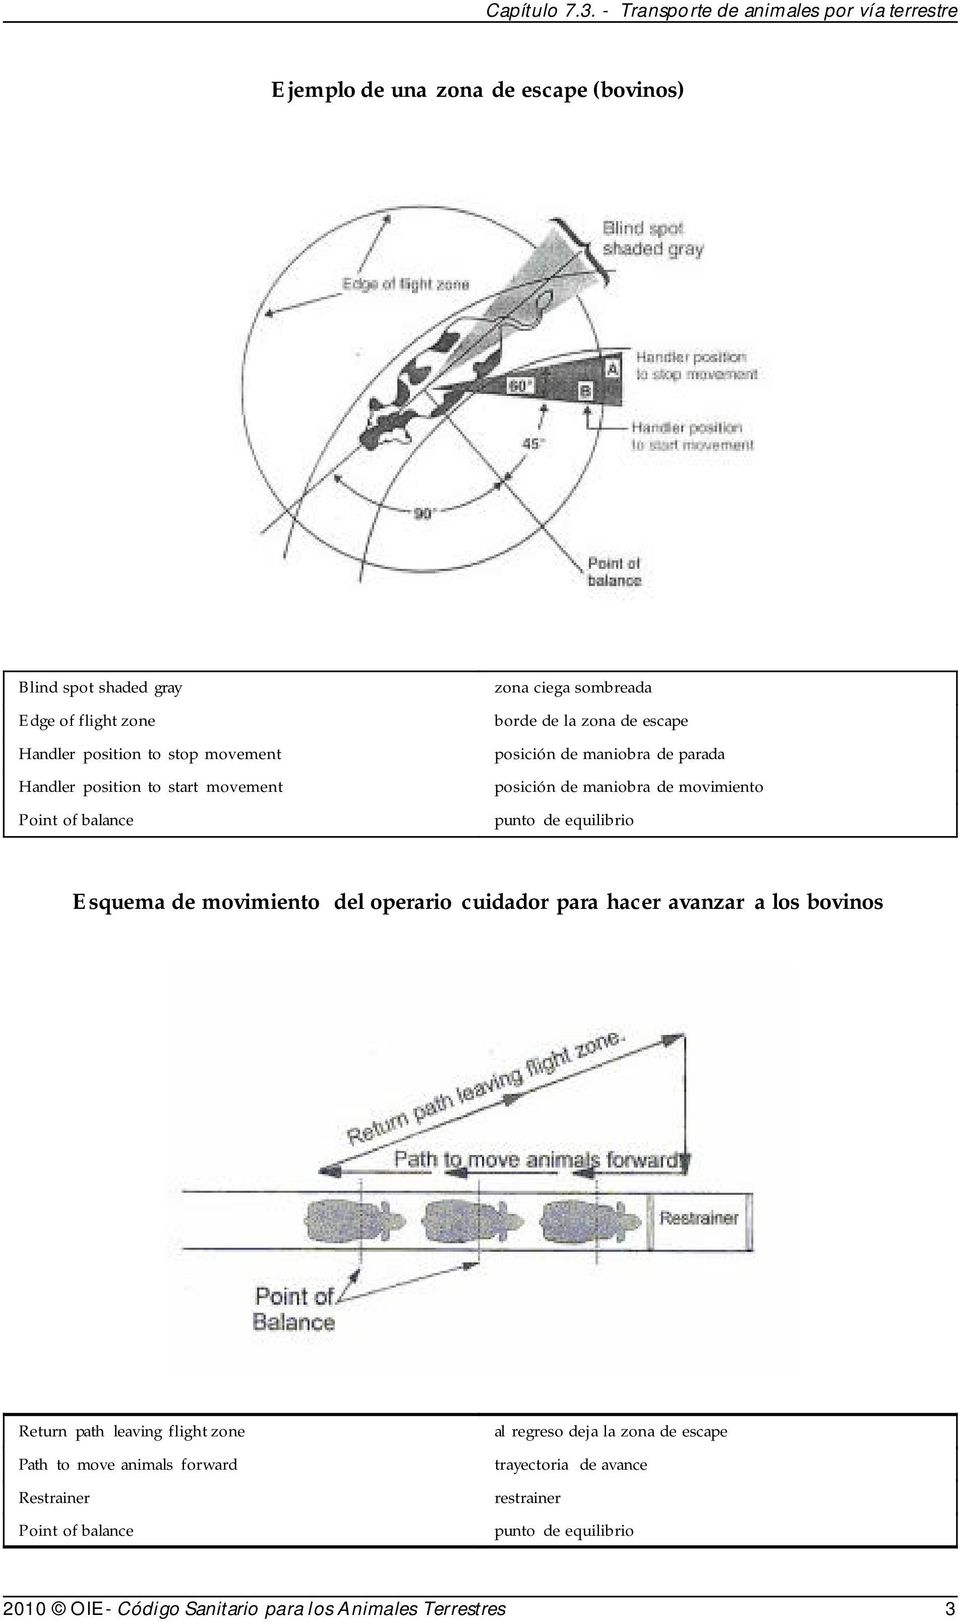 Esquema de movimiento del operario cuidador para hacer avanzar a los bovinos Return path leaving flight zone Path to move animals forward Restrainer